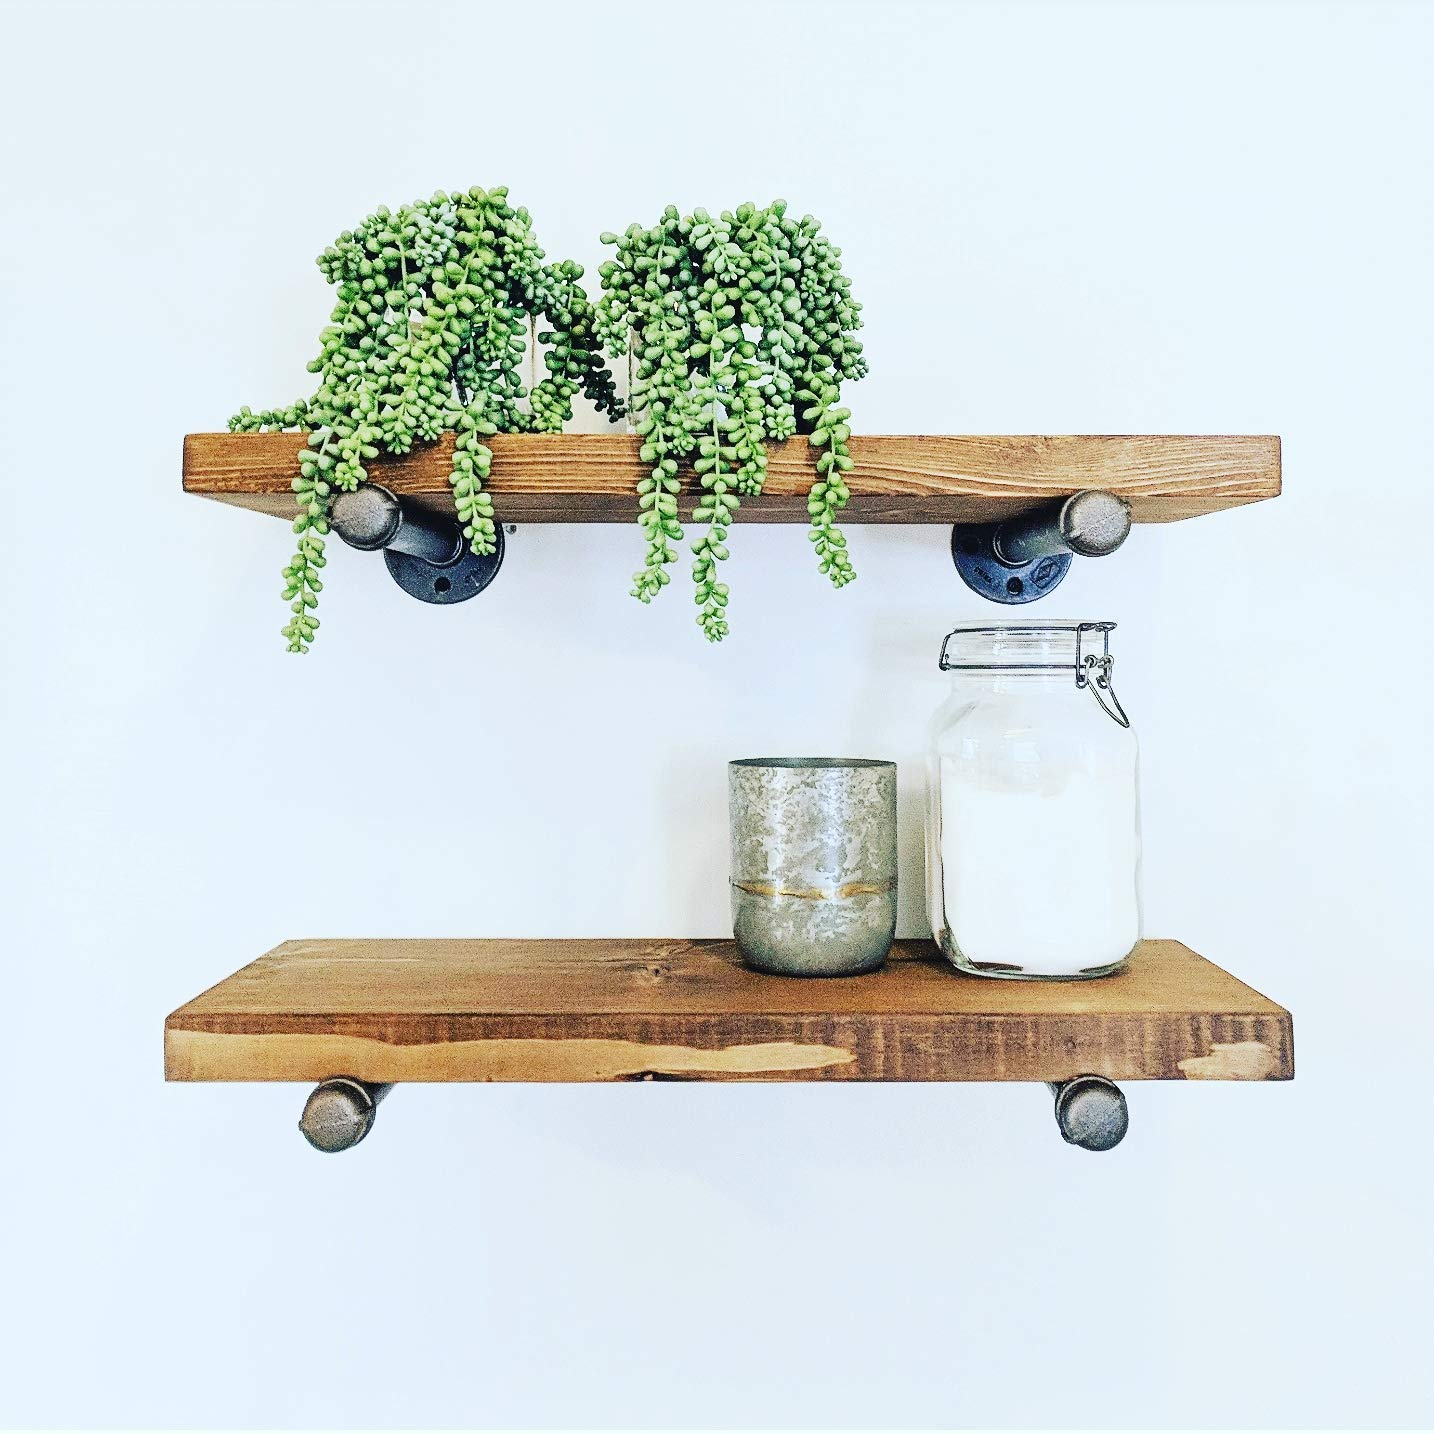 Industrial Floating Shelves 36 Inches x 9.25 inches (Set of 2), Industrial Floating Shelves, Industrial Floating Shelf, Rustic Floating Shelves